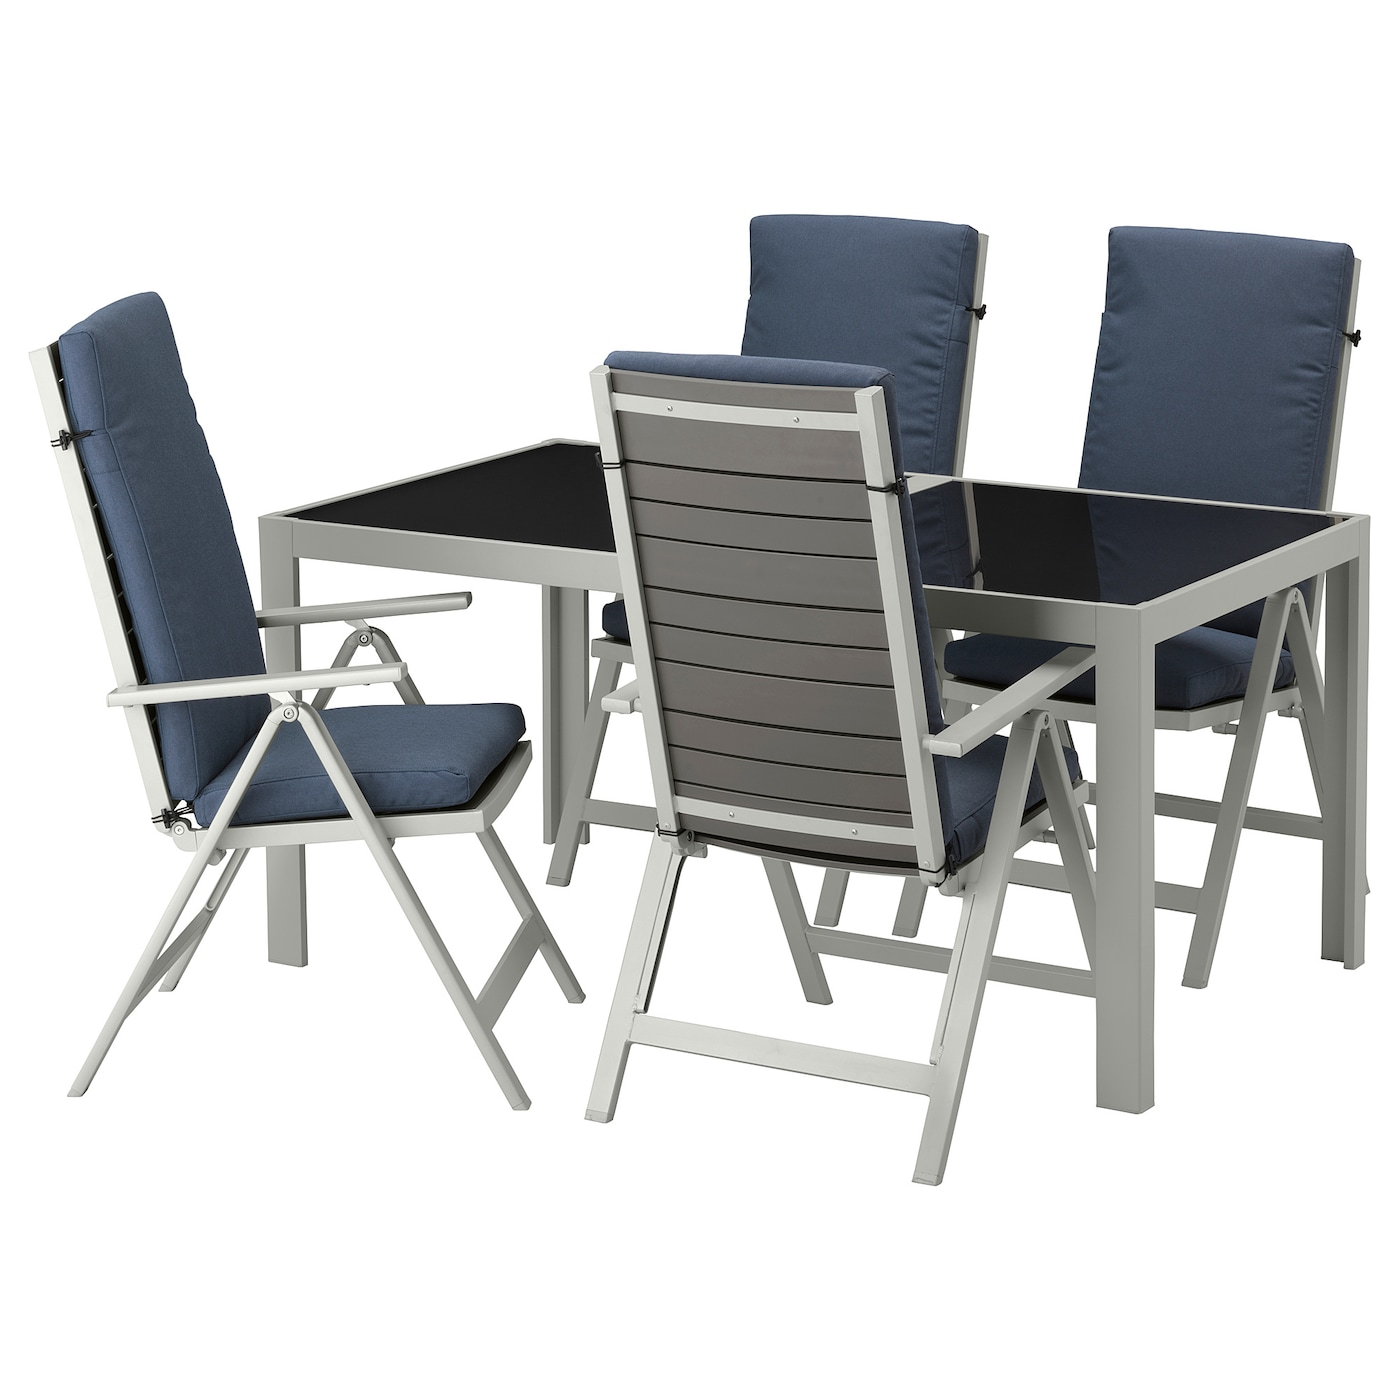 IKEA SJÄLLAND table+4 reclining chairs, outdoor Easy to fold up and put away.